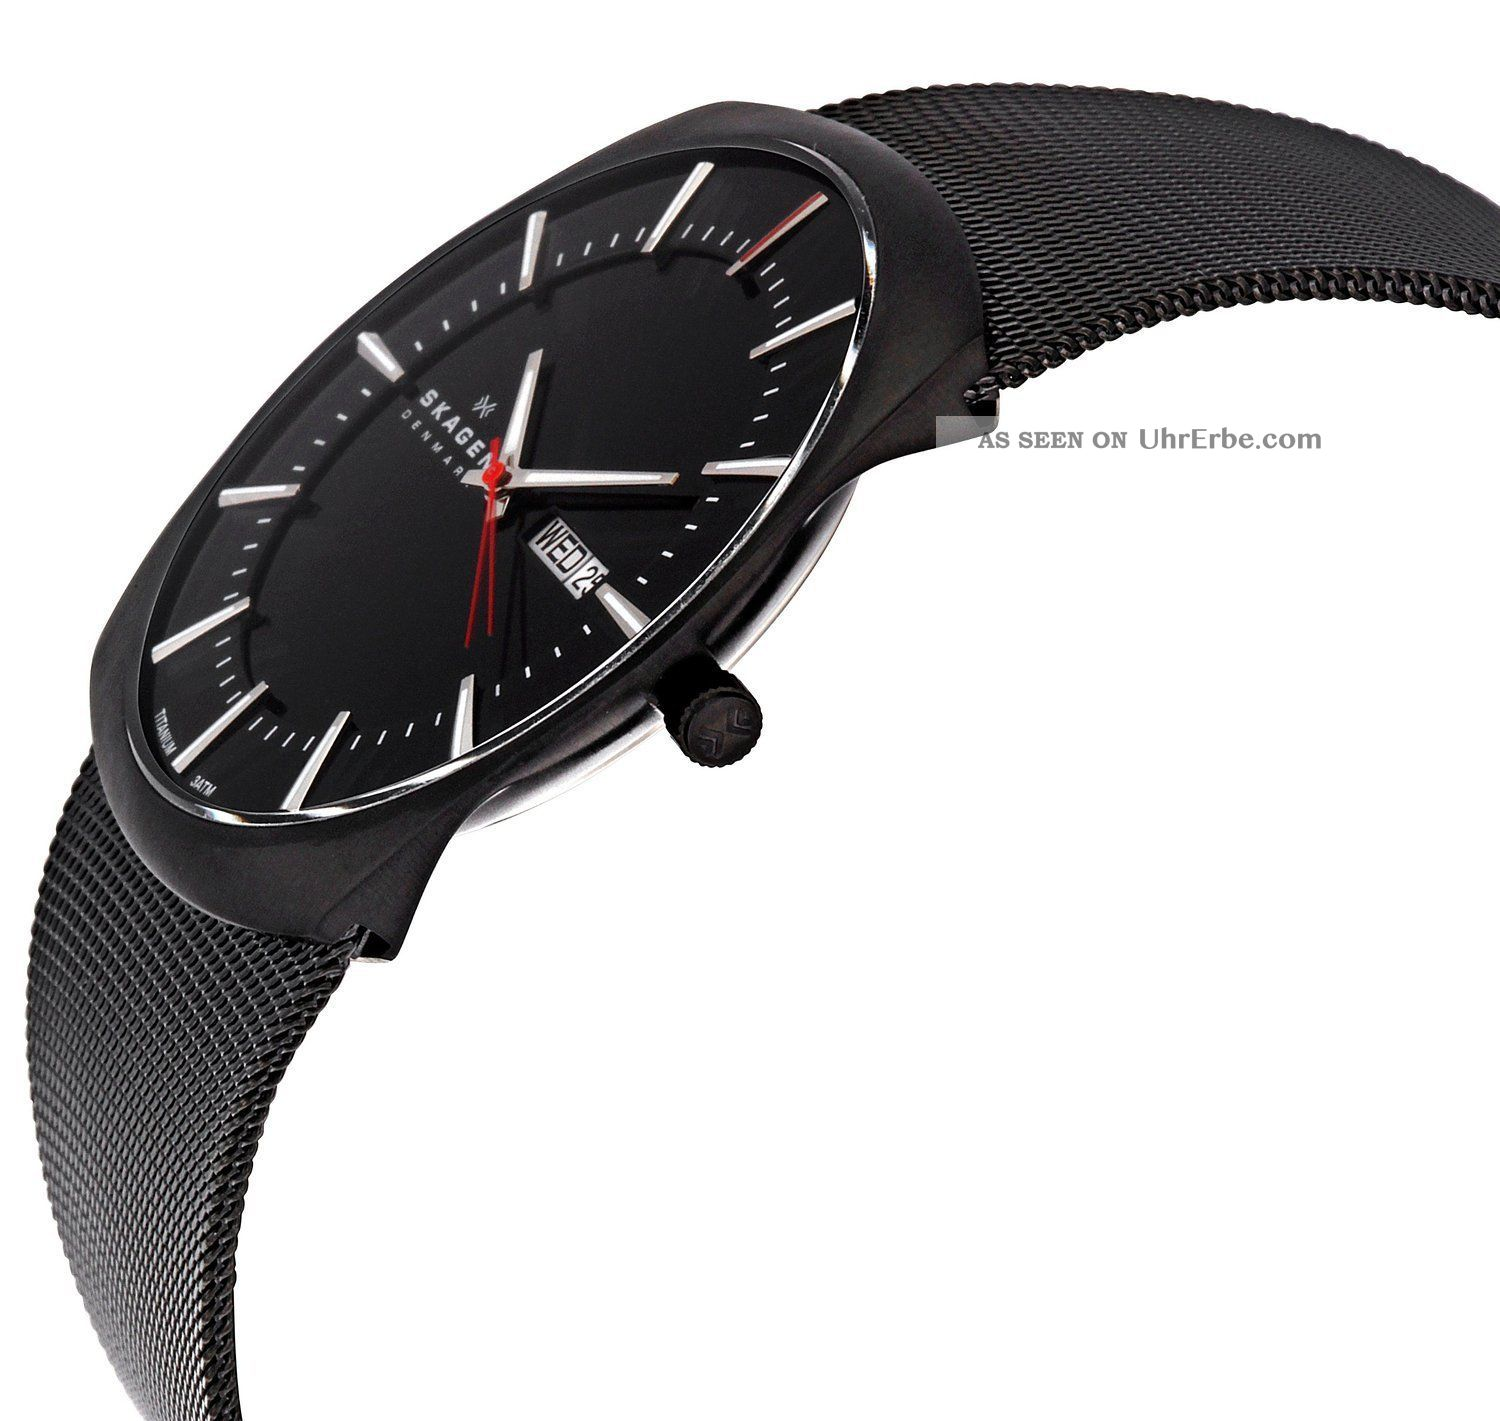 skagen herrenuhr slimline titanium 696xltbb skagen uhr titan. Black Bedroom Furniture Sets. Home Design Ideas